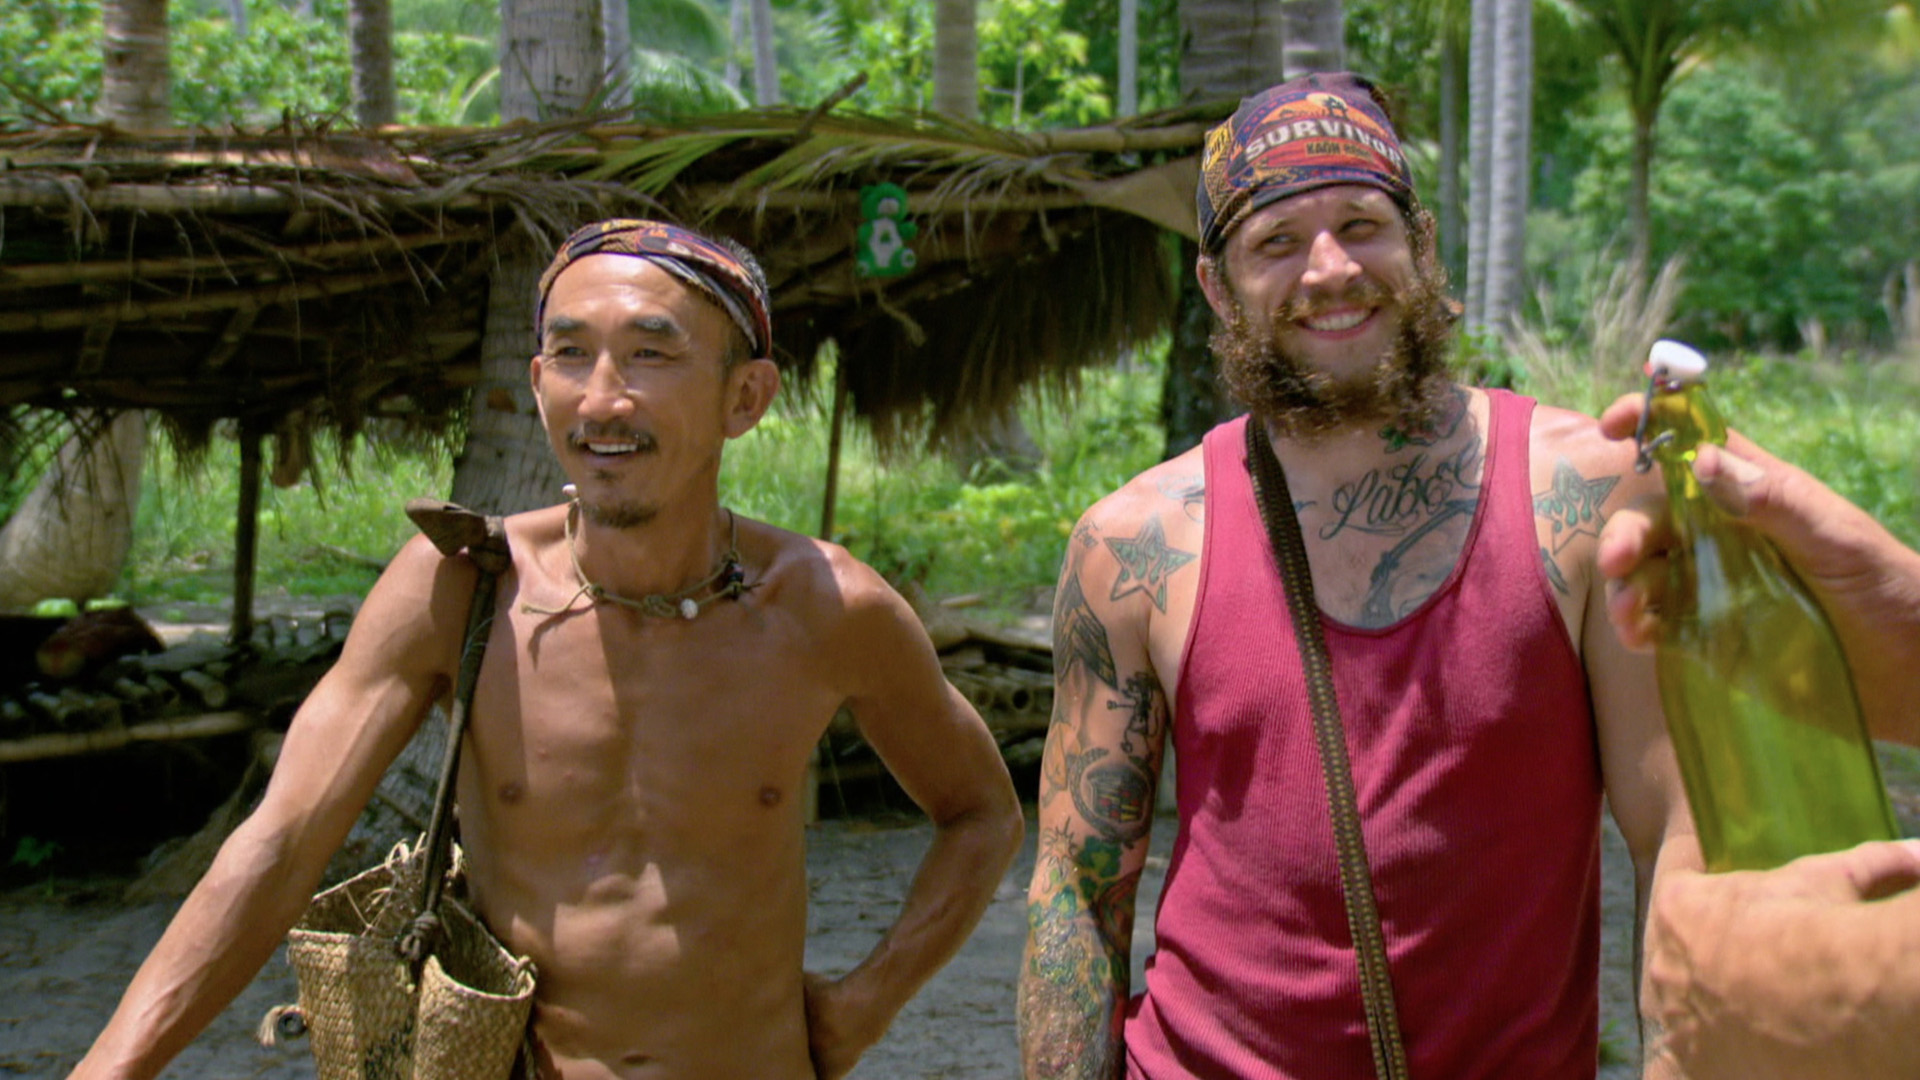 Tai and Jason share a few smiles in between challenges.